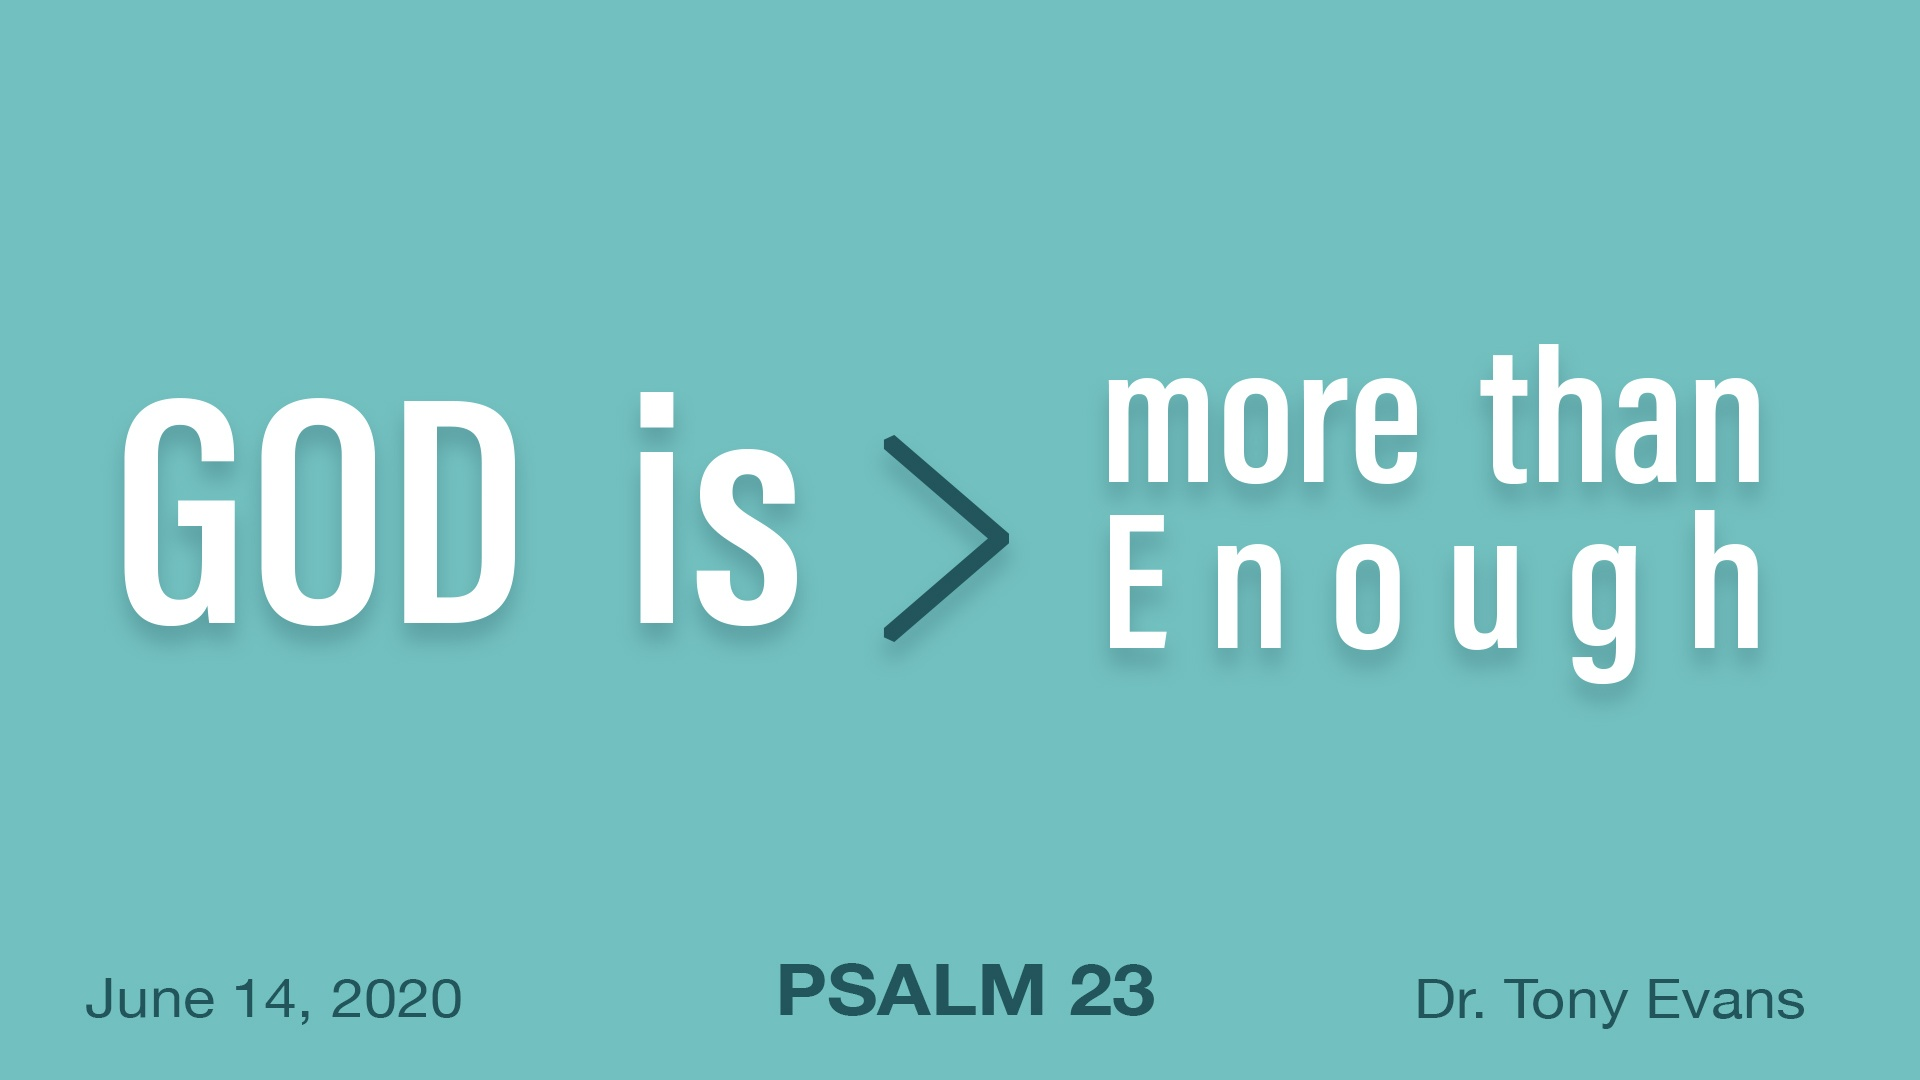 God is More than Enough by Dr. Tony Evans